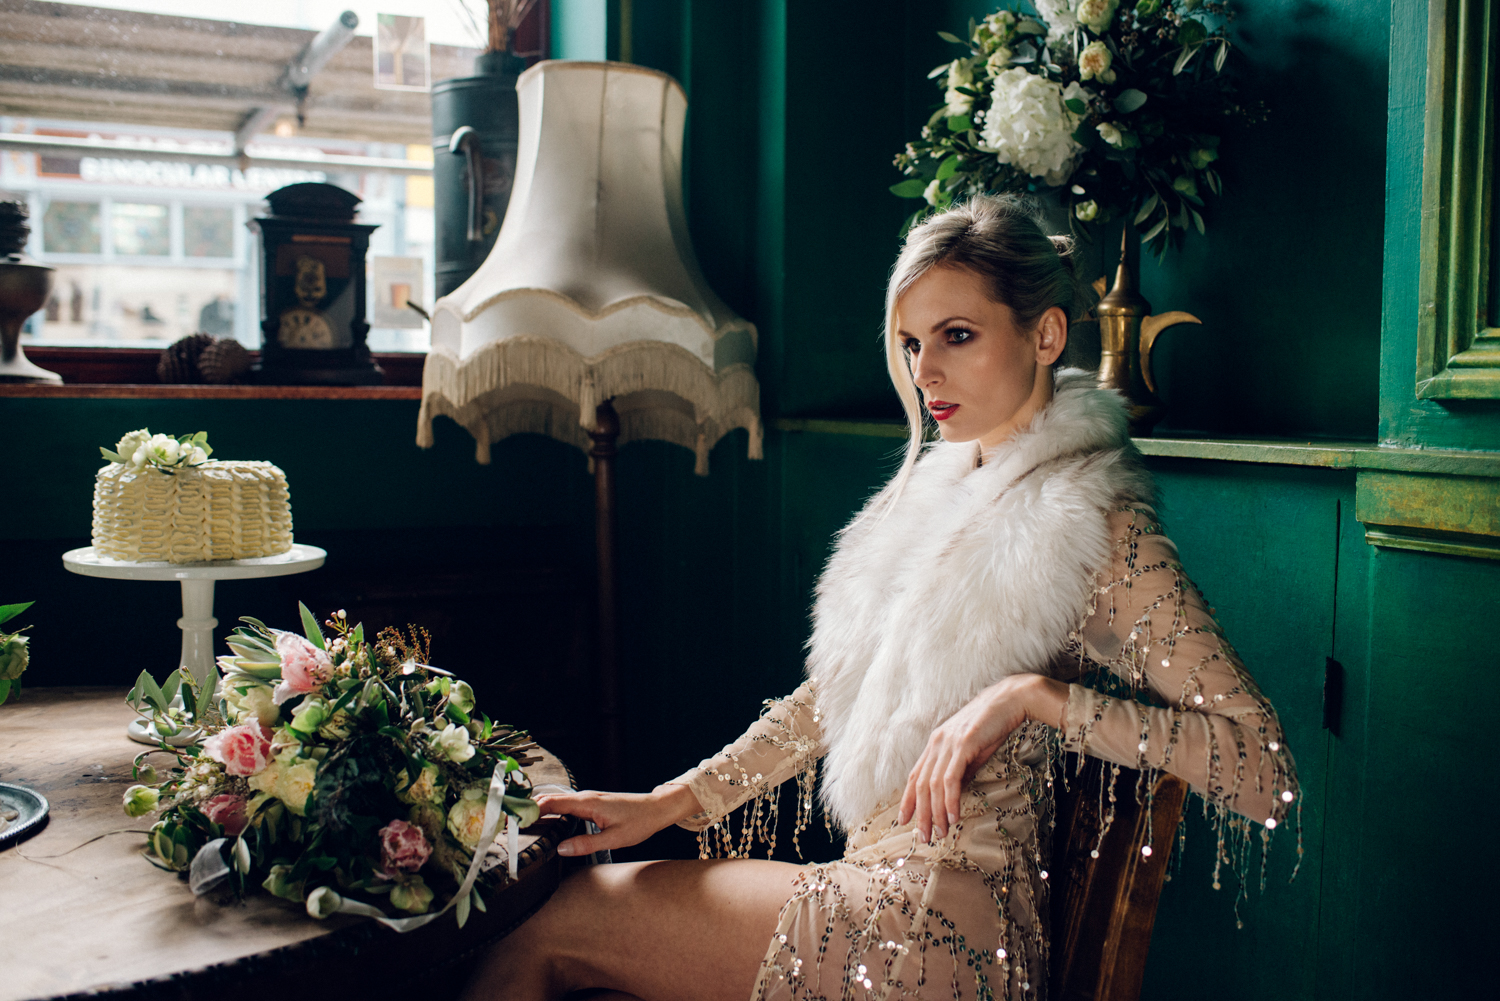 Margo Ryszczuk Photography - Its all about the glitter, sparkle and shine art deco inspired wedding shoot 74y53675467342